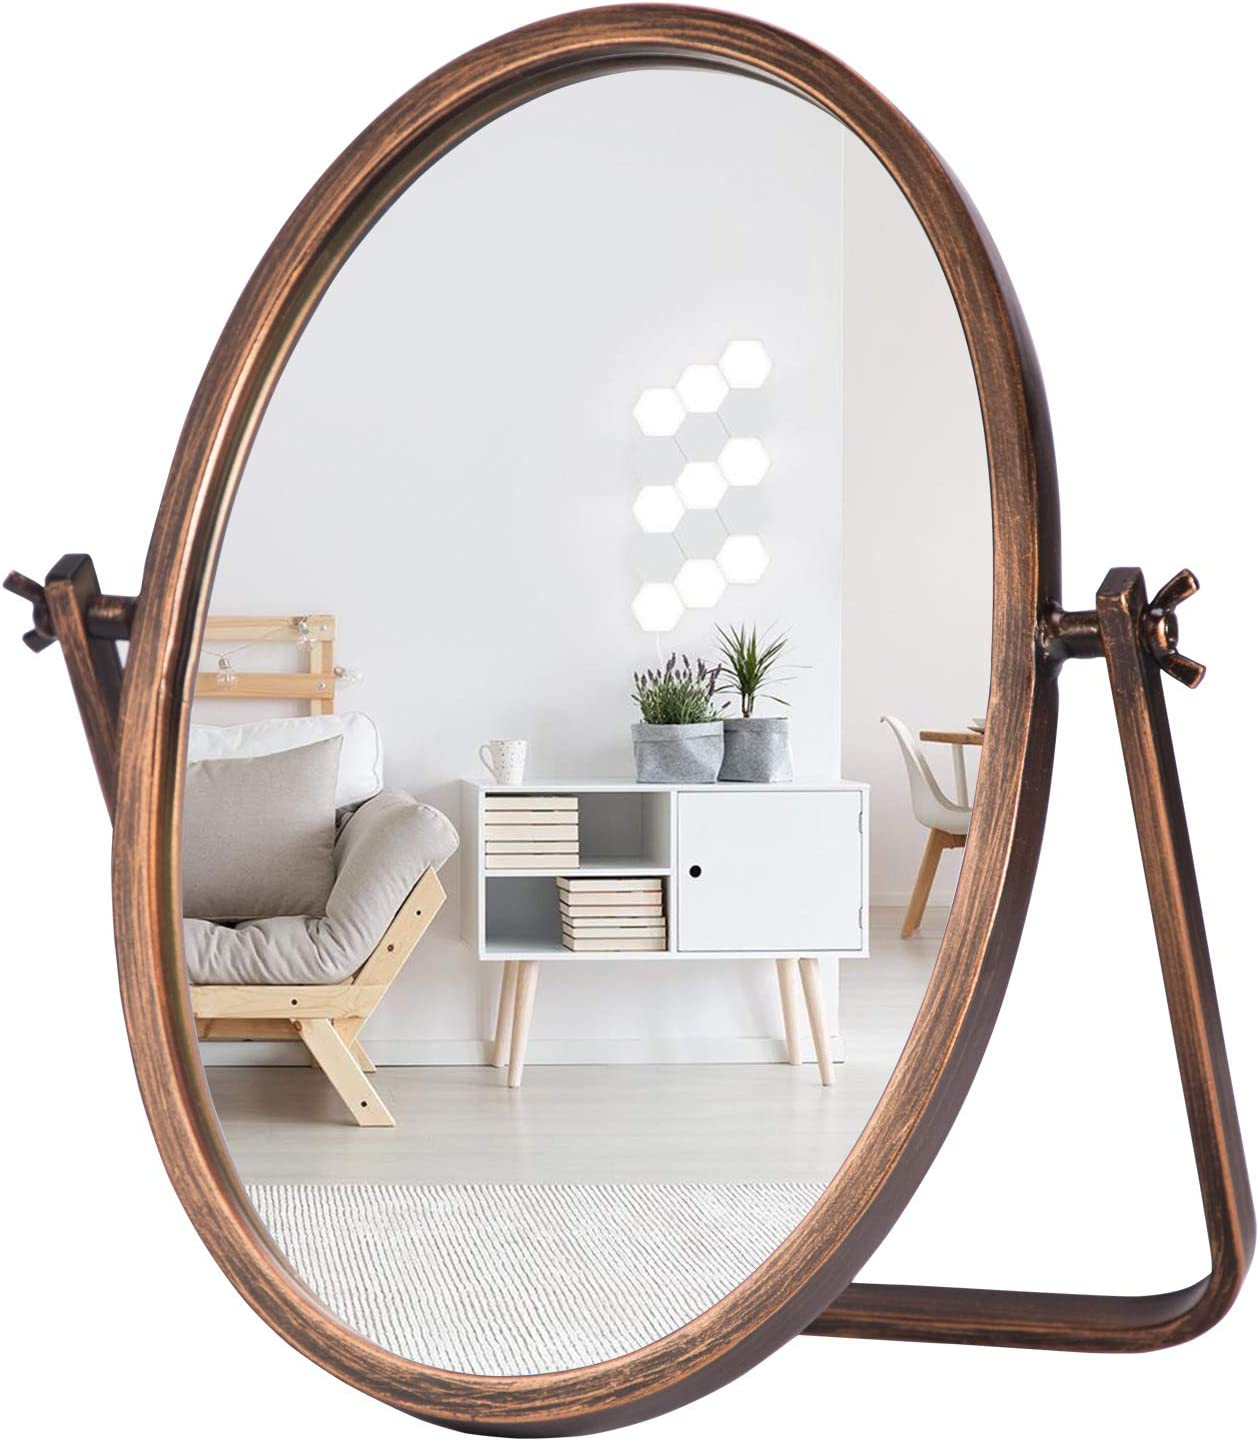 "Geloo Vanity Makeup Mirror Decor - 10"" Small Standing Vintage Table Mirrors 360 Adjustable Rotation, Bronze Metal Framed for Tabletop, Office, Bedroom, Bathroom,Living Room,Antique"